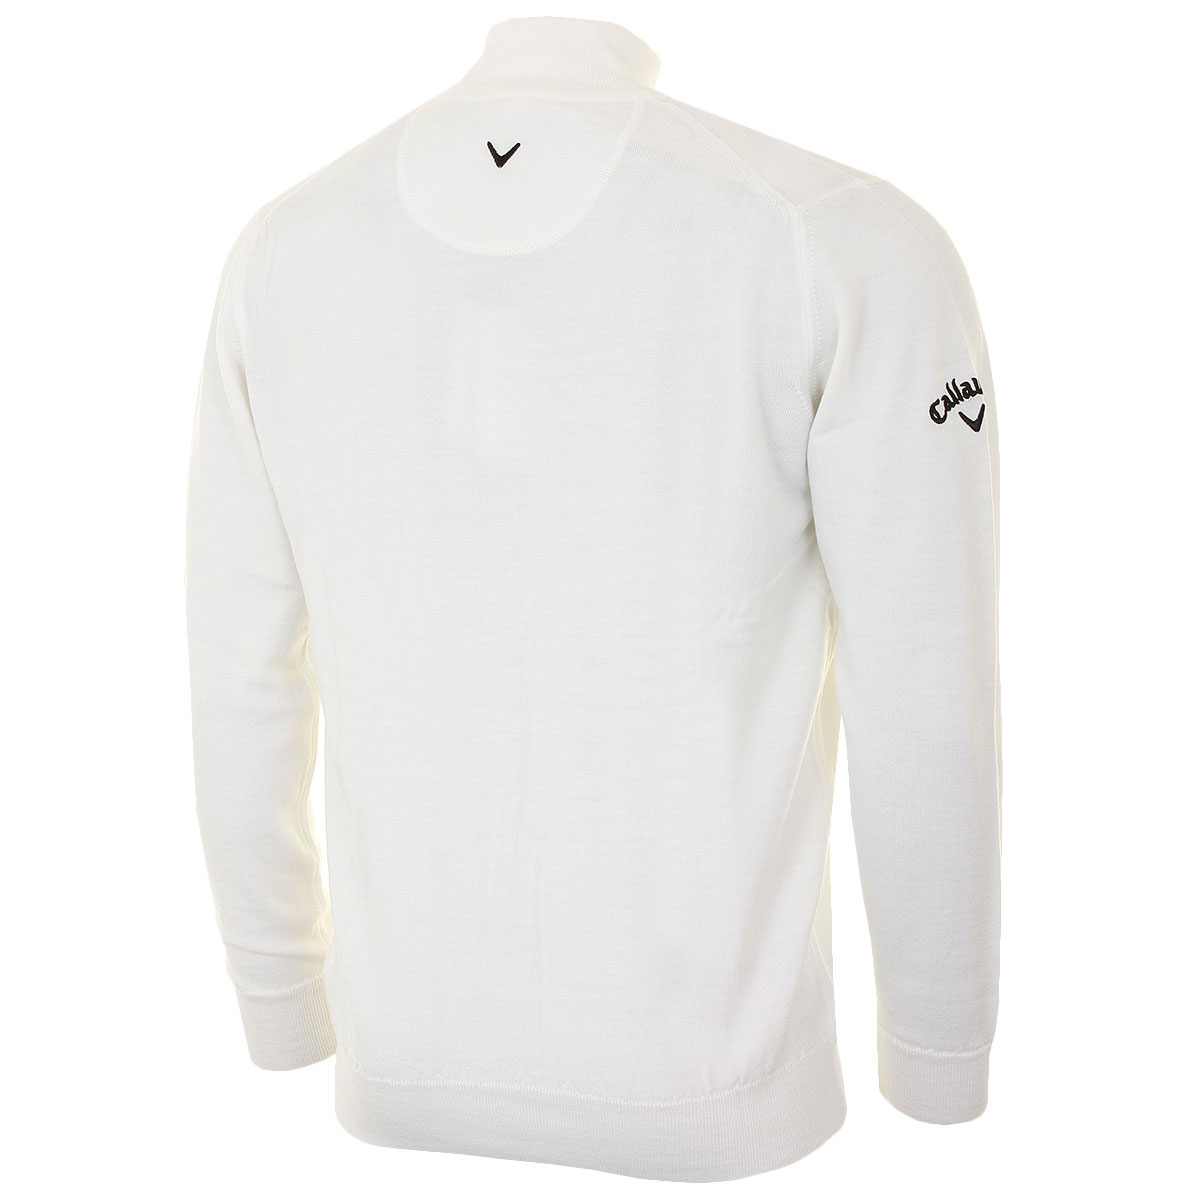 Callaway-Golf-Mens-Merino-1-4-Zip-Sweater-Wool-Pullover-Therm-Jumper-60-OFF-RRP thumbnail 10